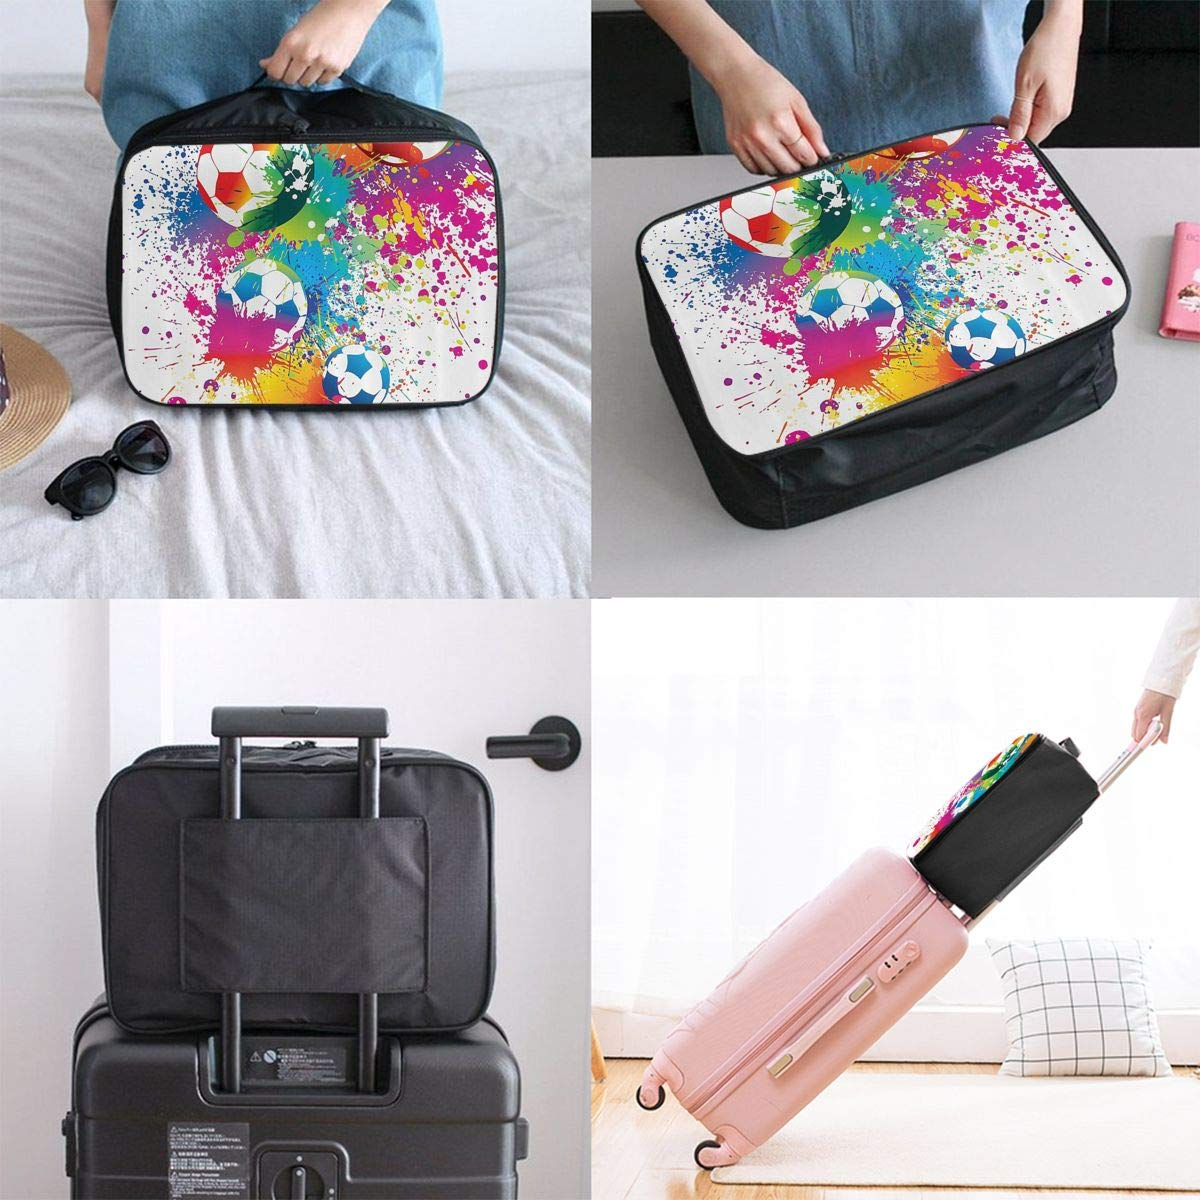 ADGAI Colored Splashes All Over The Soccer Canvas Travel Weekender Bag,Fashion Custom Lightweight Large Capacity Portable Luggage Bag,Suitcase Trolley Bag